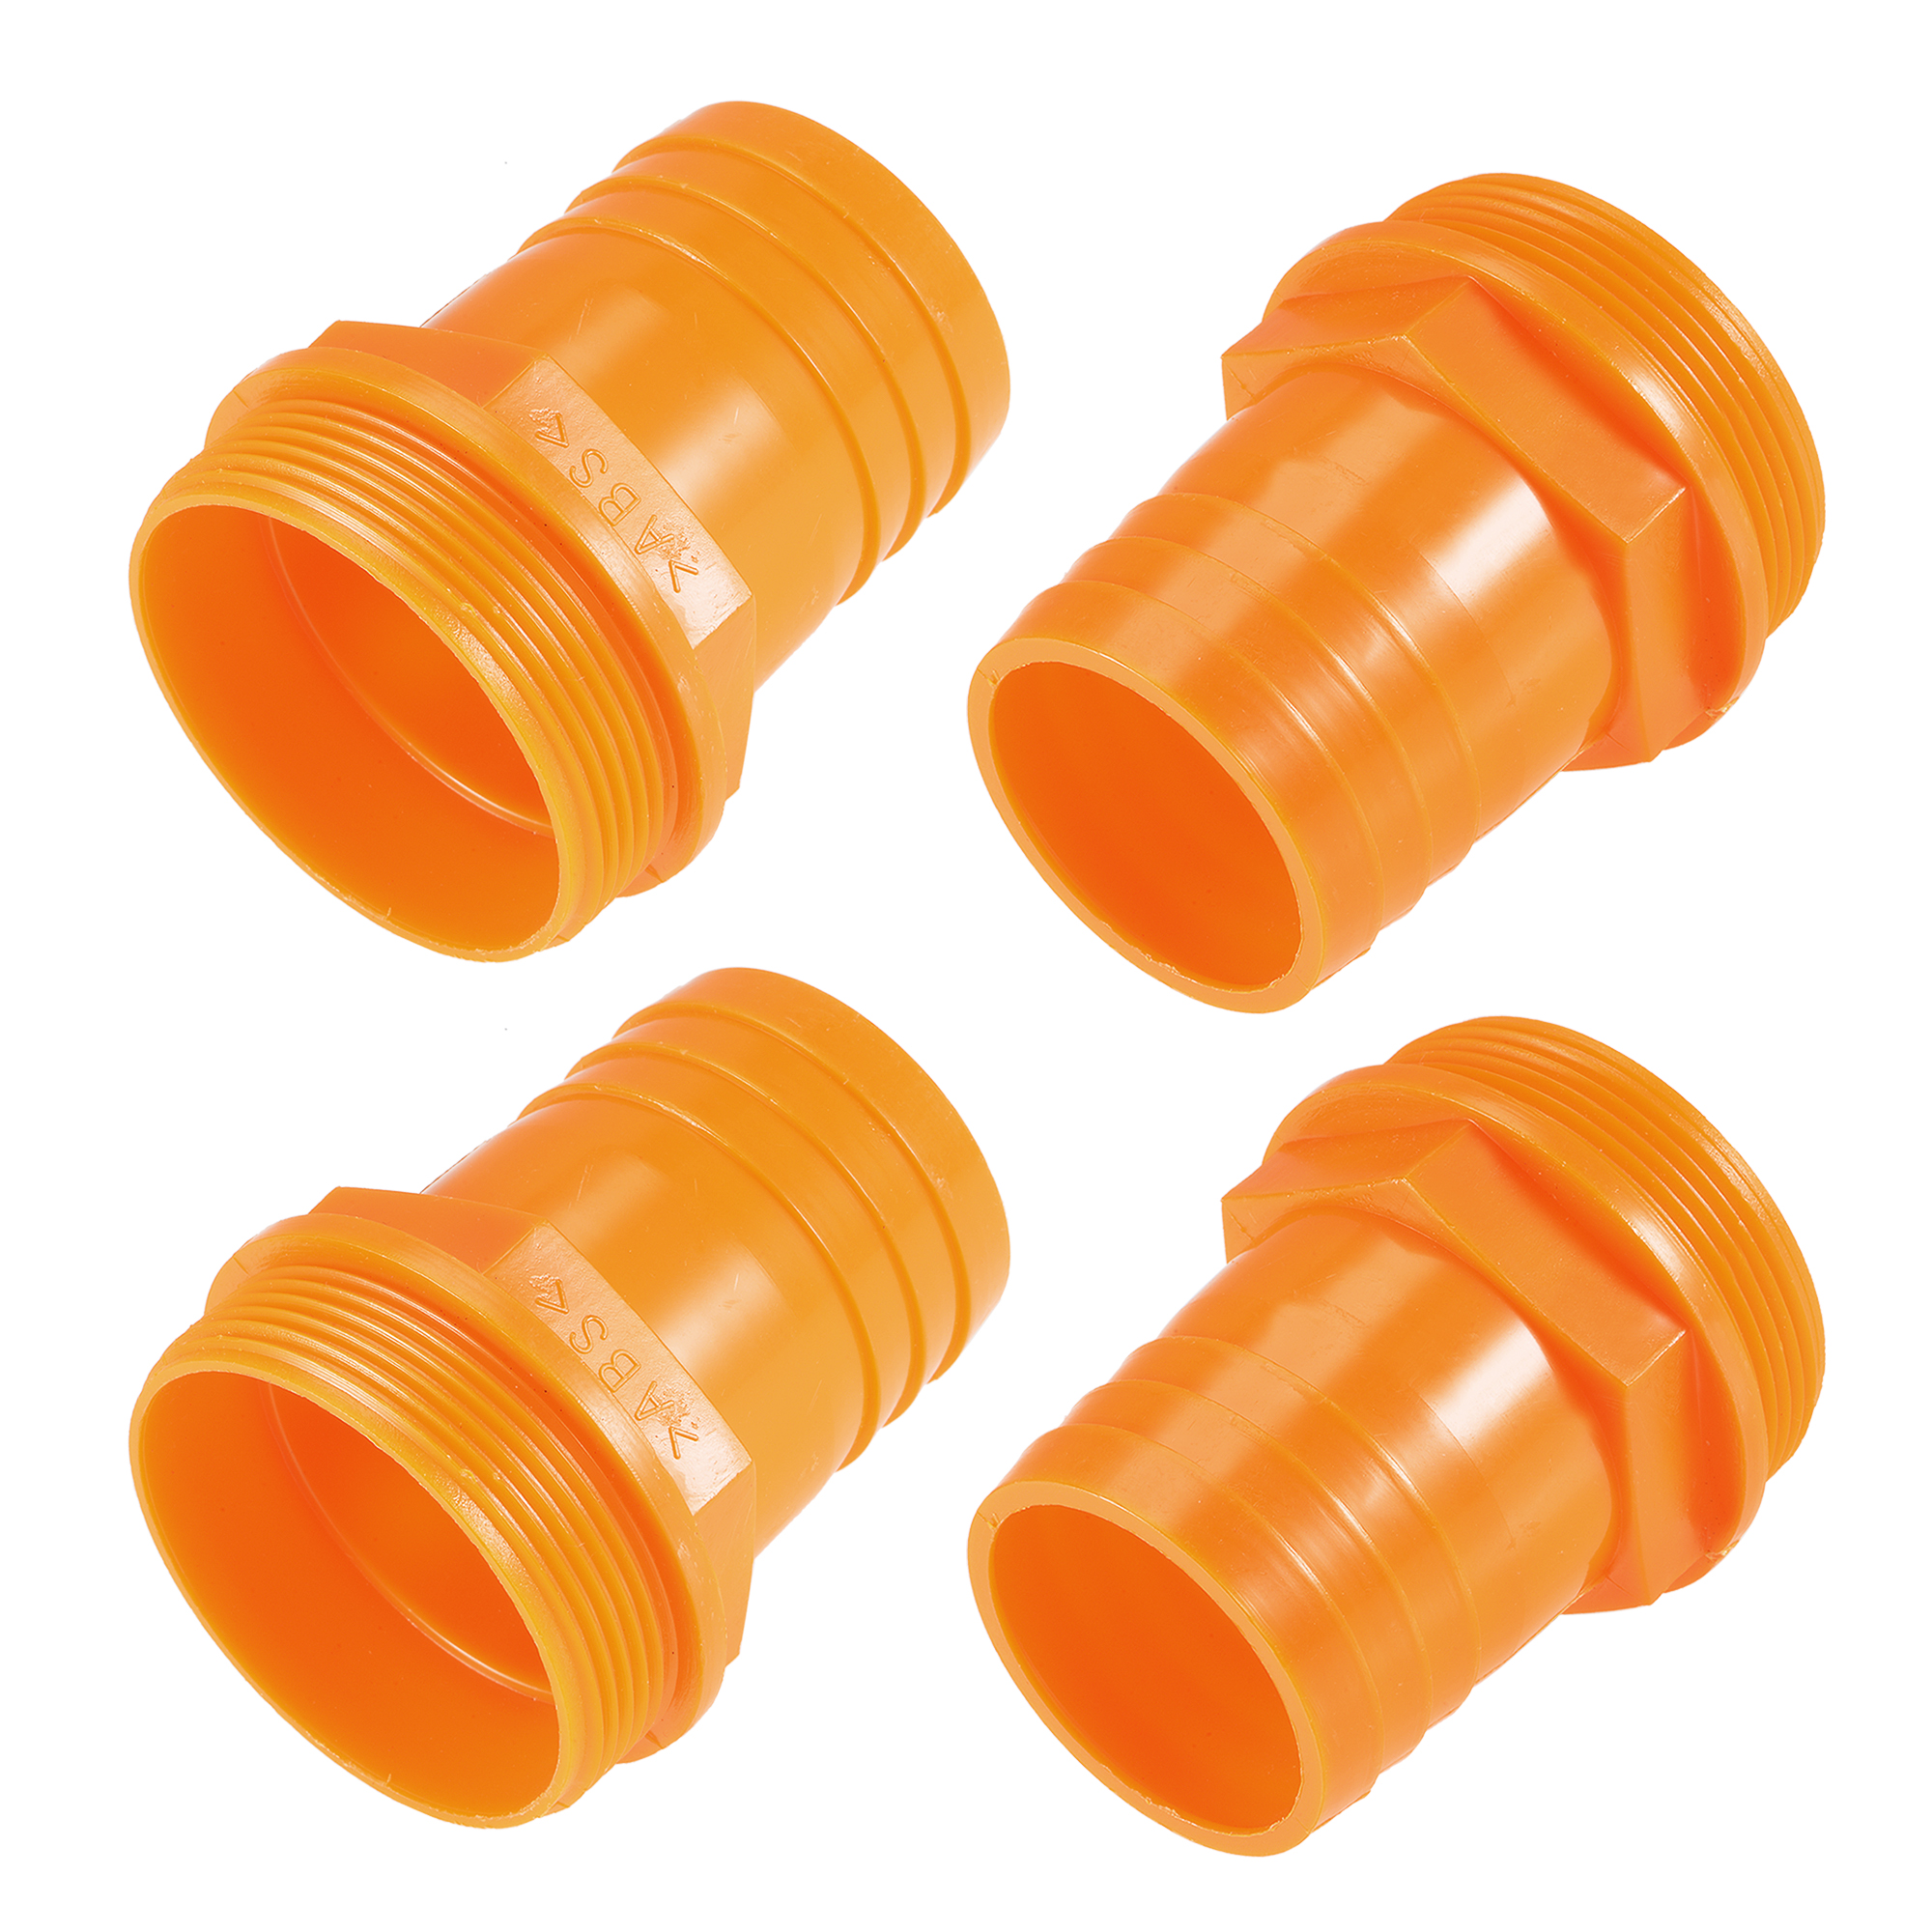 PVC Tube Fitting Adapter 46mm Barbed x G2 Male Orange for Aquariums 4Pcs